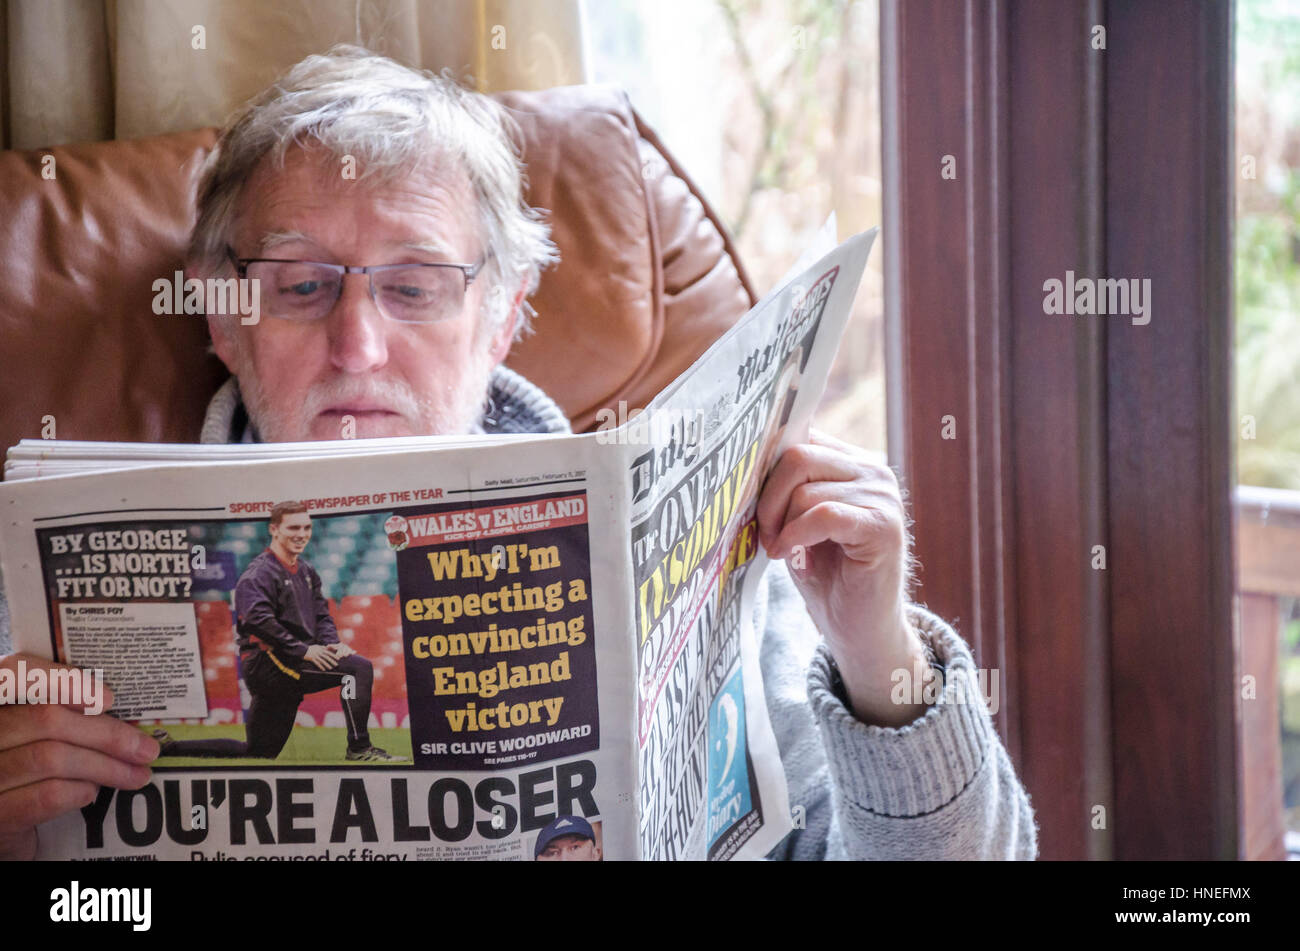 A man sits in Ann armchair reading the Daily Mail newspaper - Stock Image